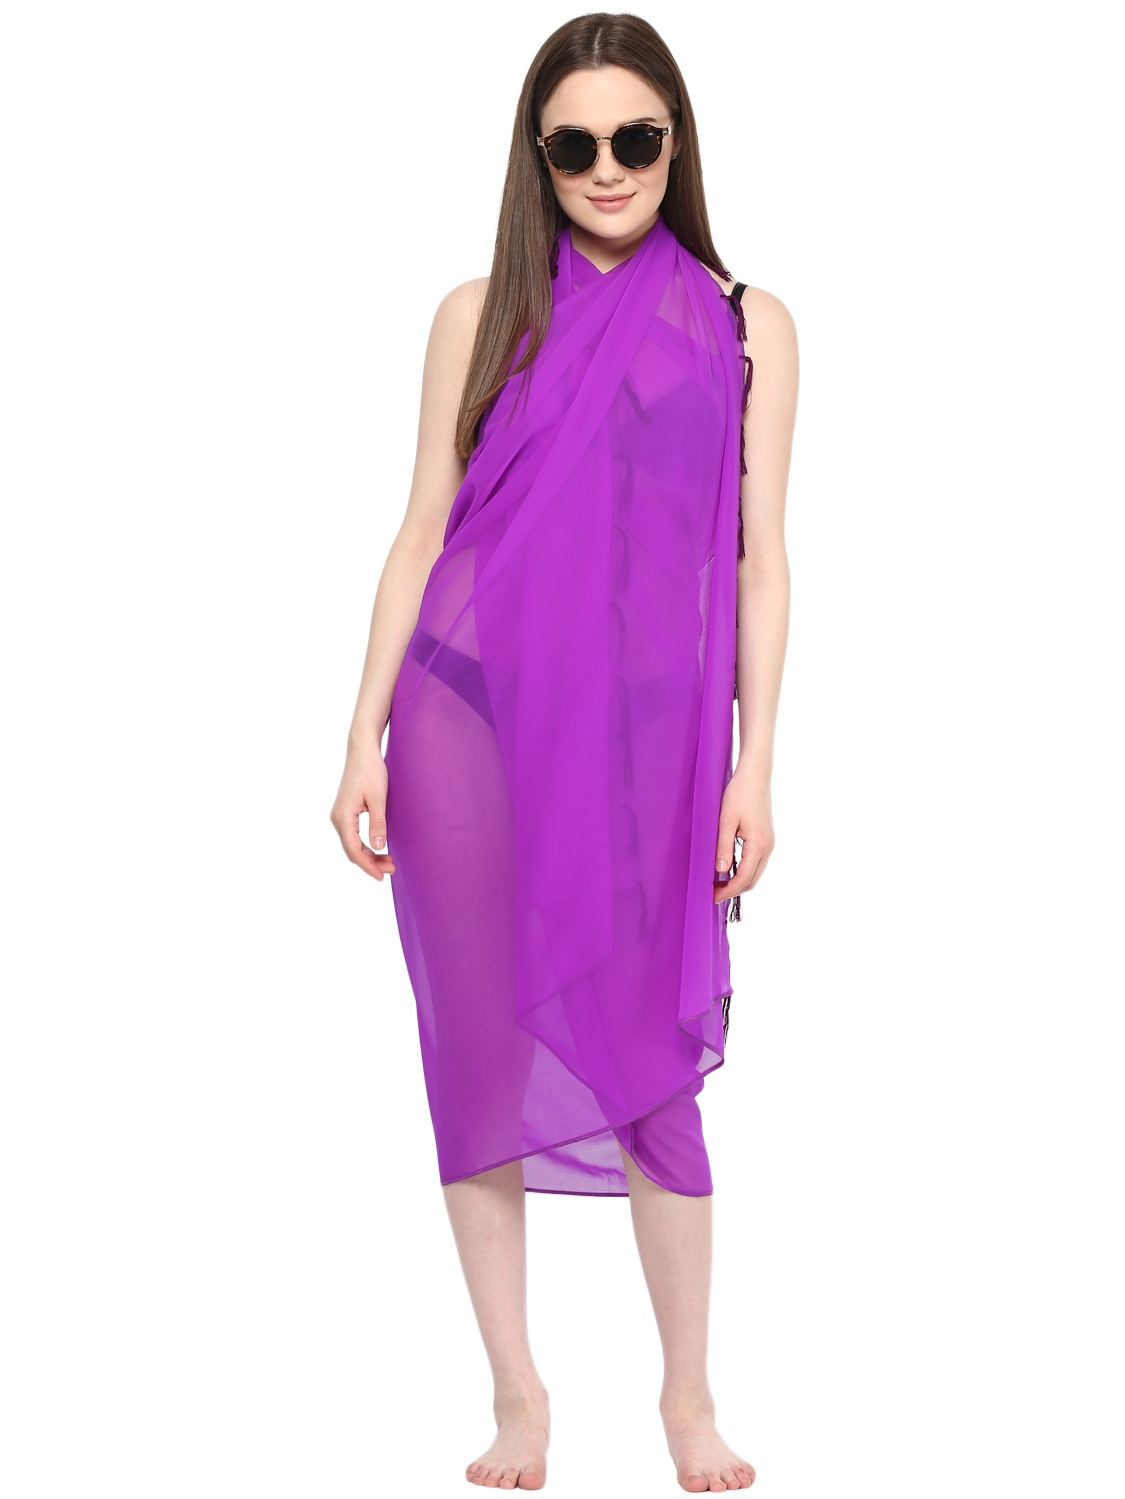 Sarong Women Solid Plain Beach Swimsuit Wrap One Size Sheer Cover Up Purple